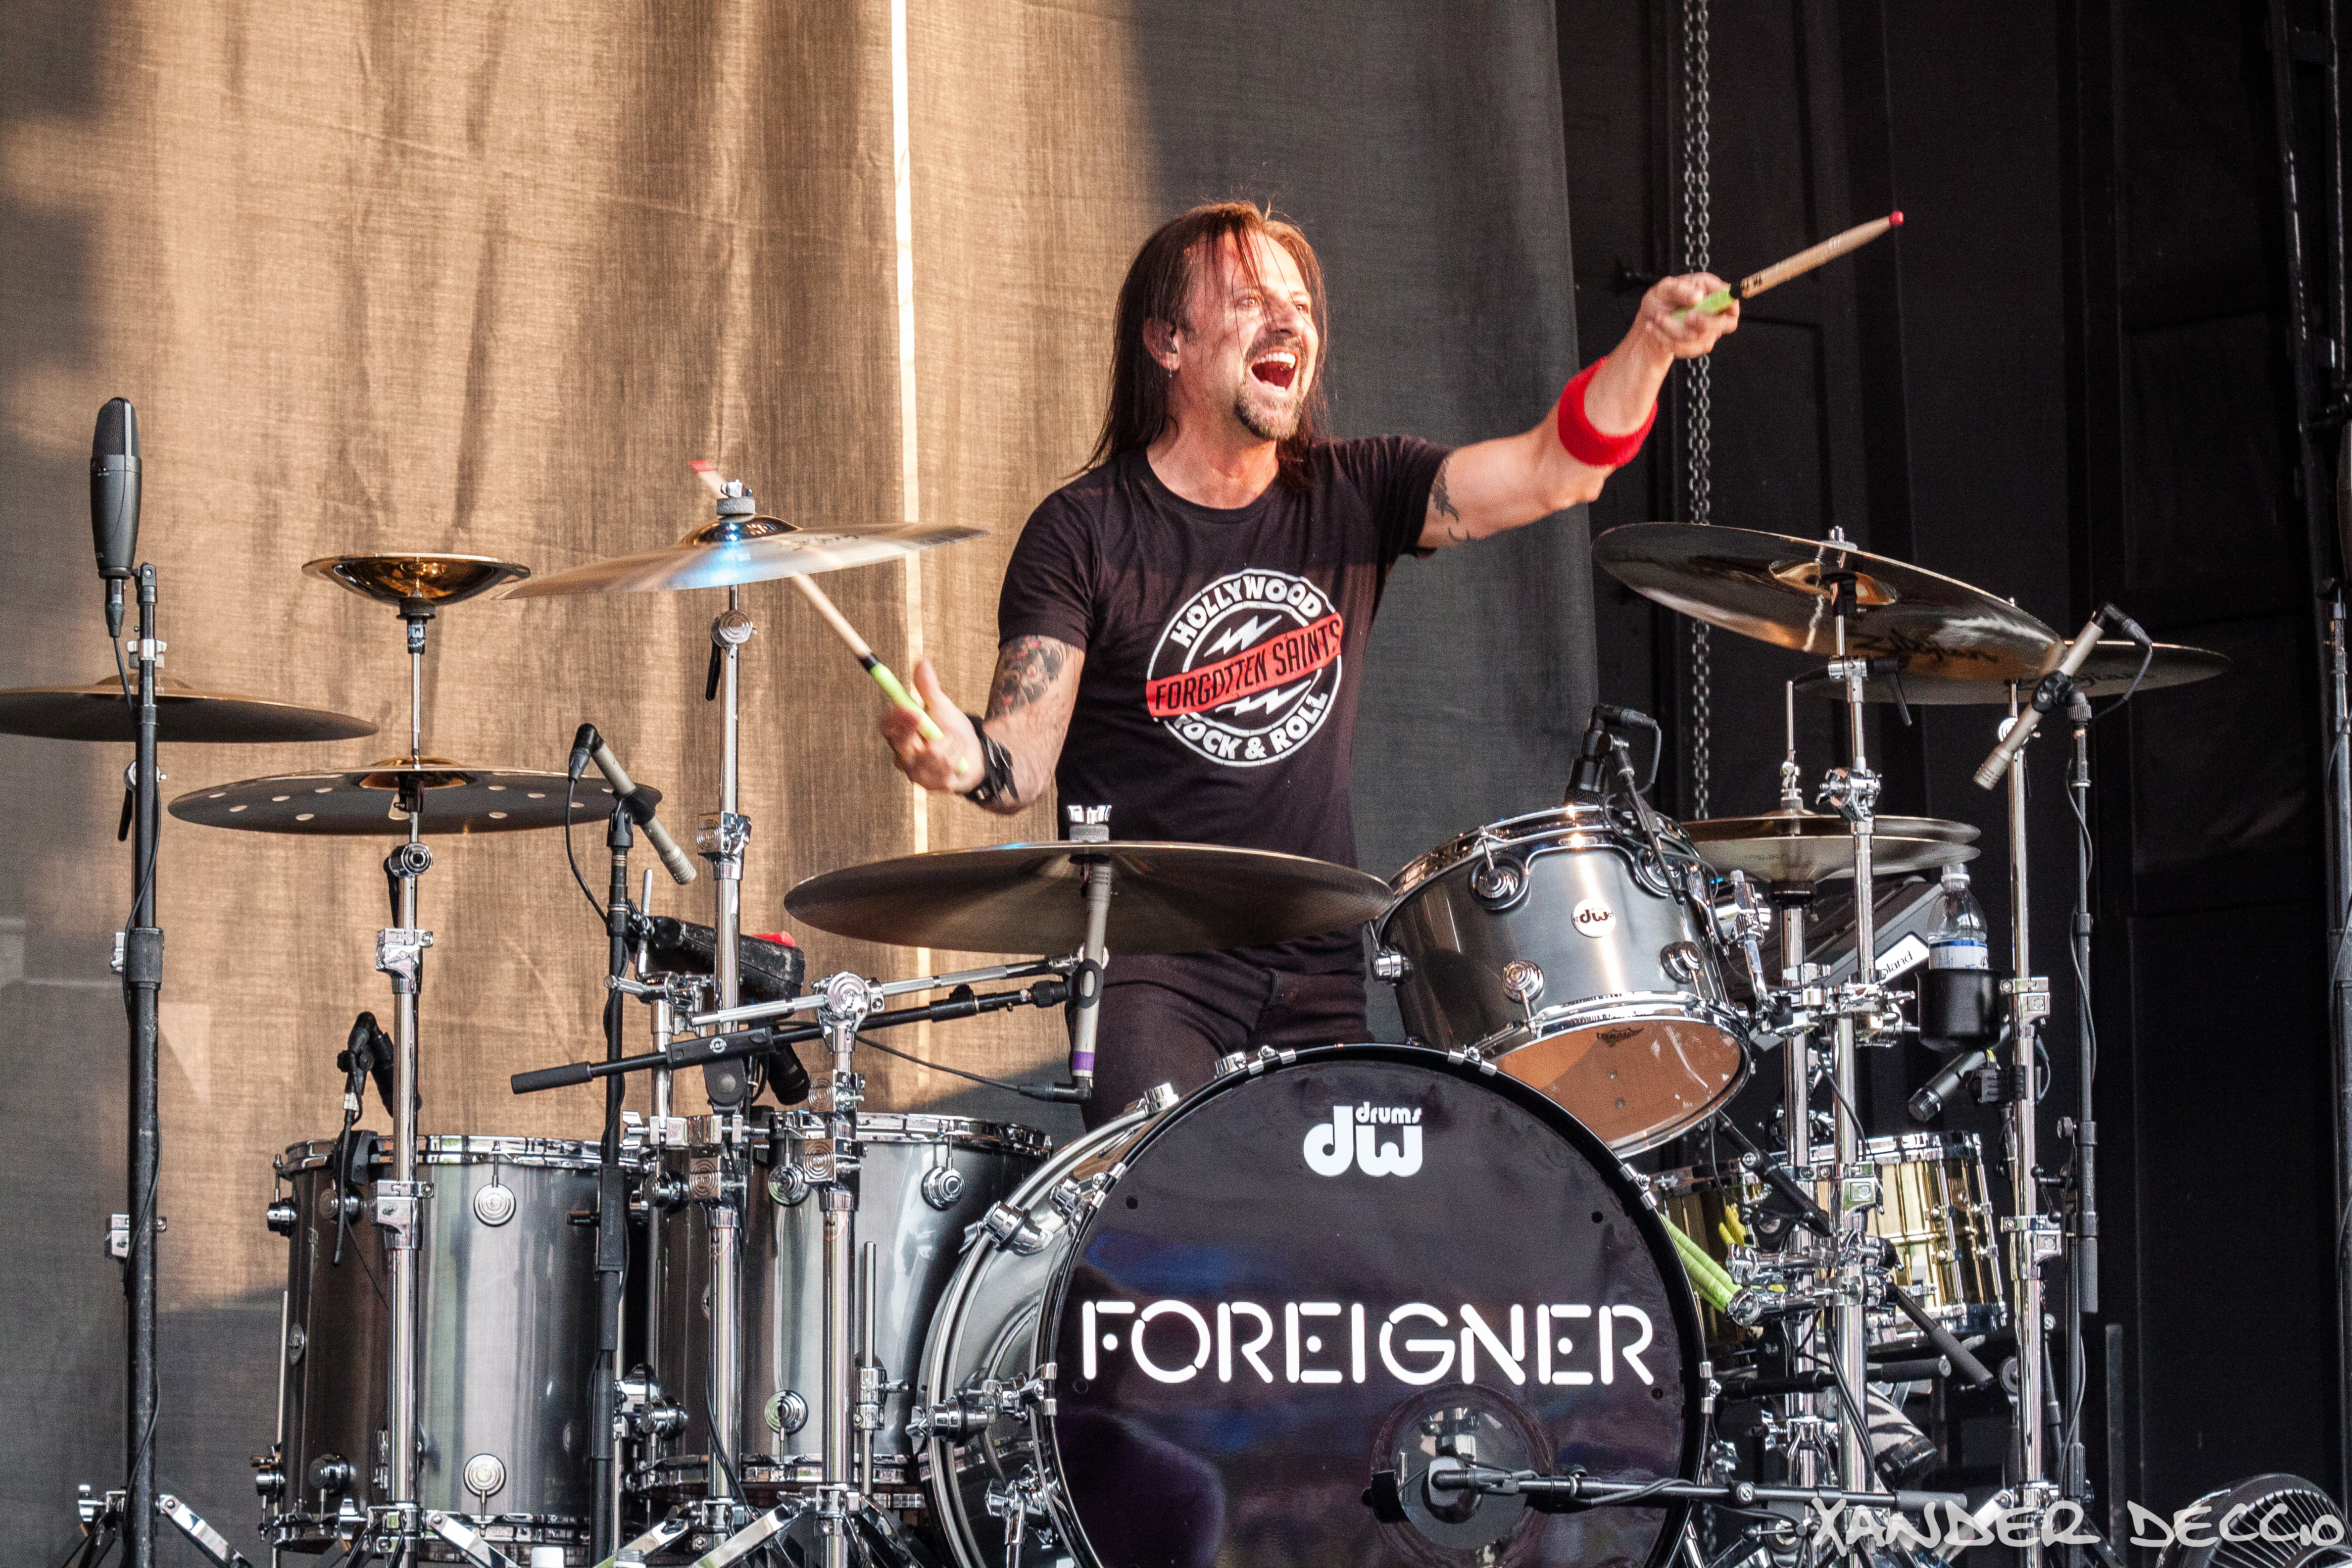 Foreigner @ Maryhill Winery (Photo By Xander Deccio)